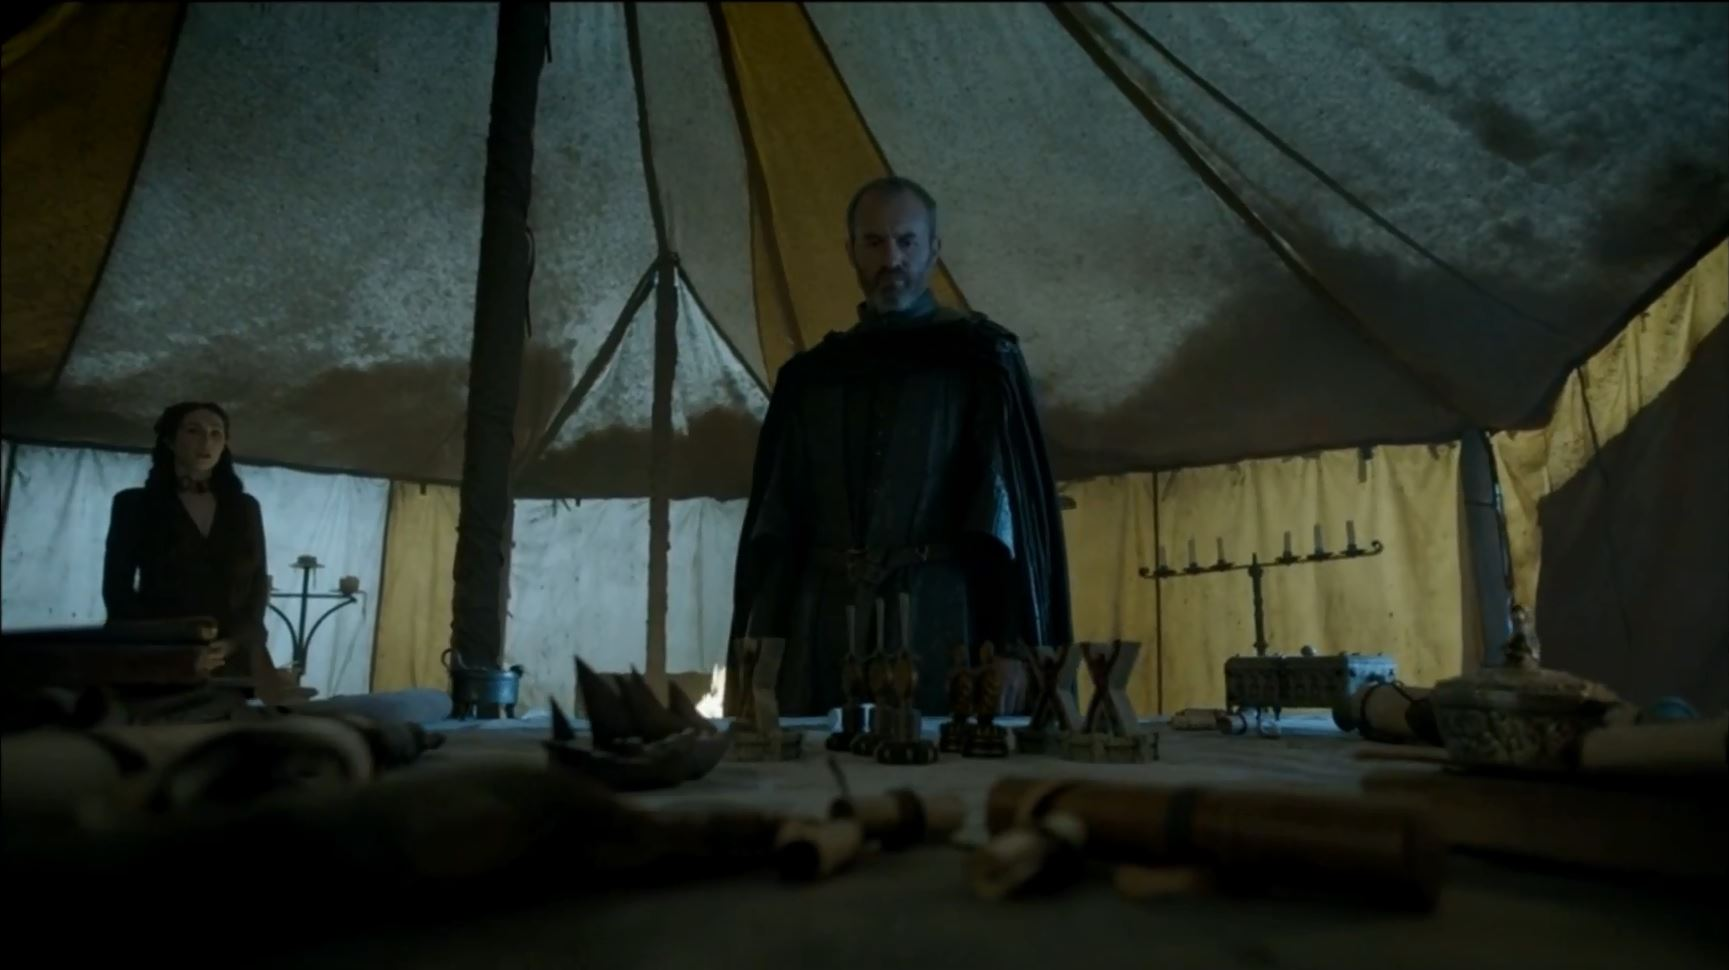 Game of Thrones Season 5 Trailer 2. Stephen Dillane as King Stannis Baratheon in the north